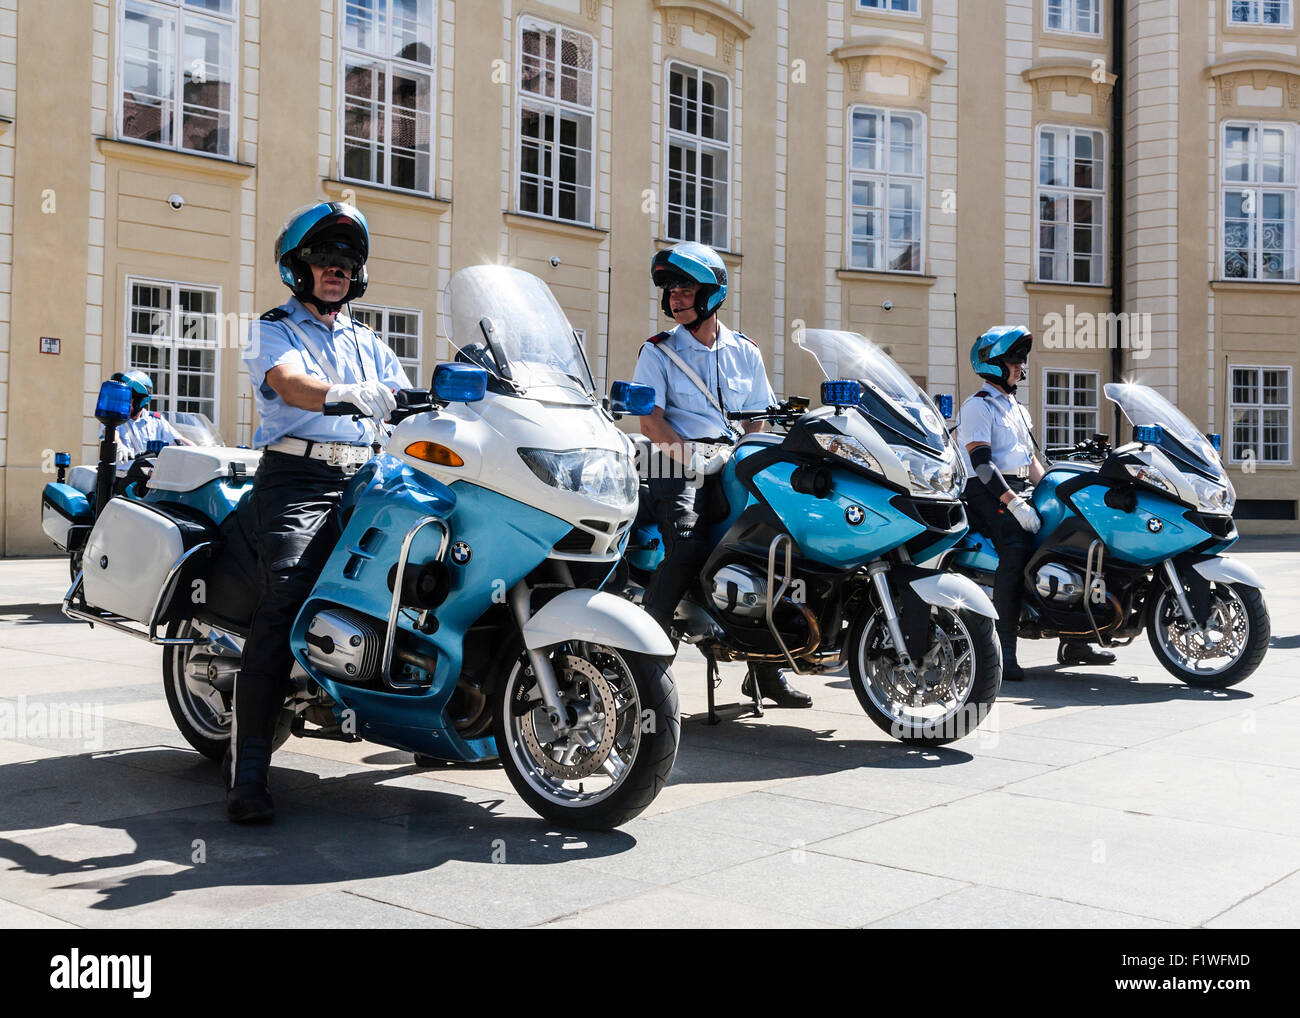 tschechien motorrad polizei auf der prager burg prag. Black Bedroom Furniture Sets. Home Design Ideas